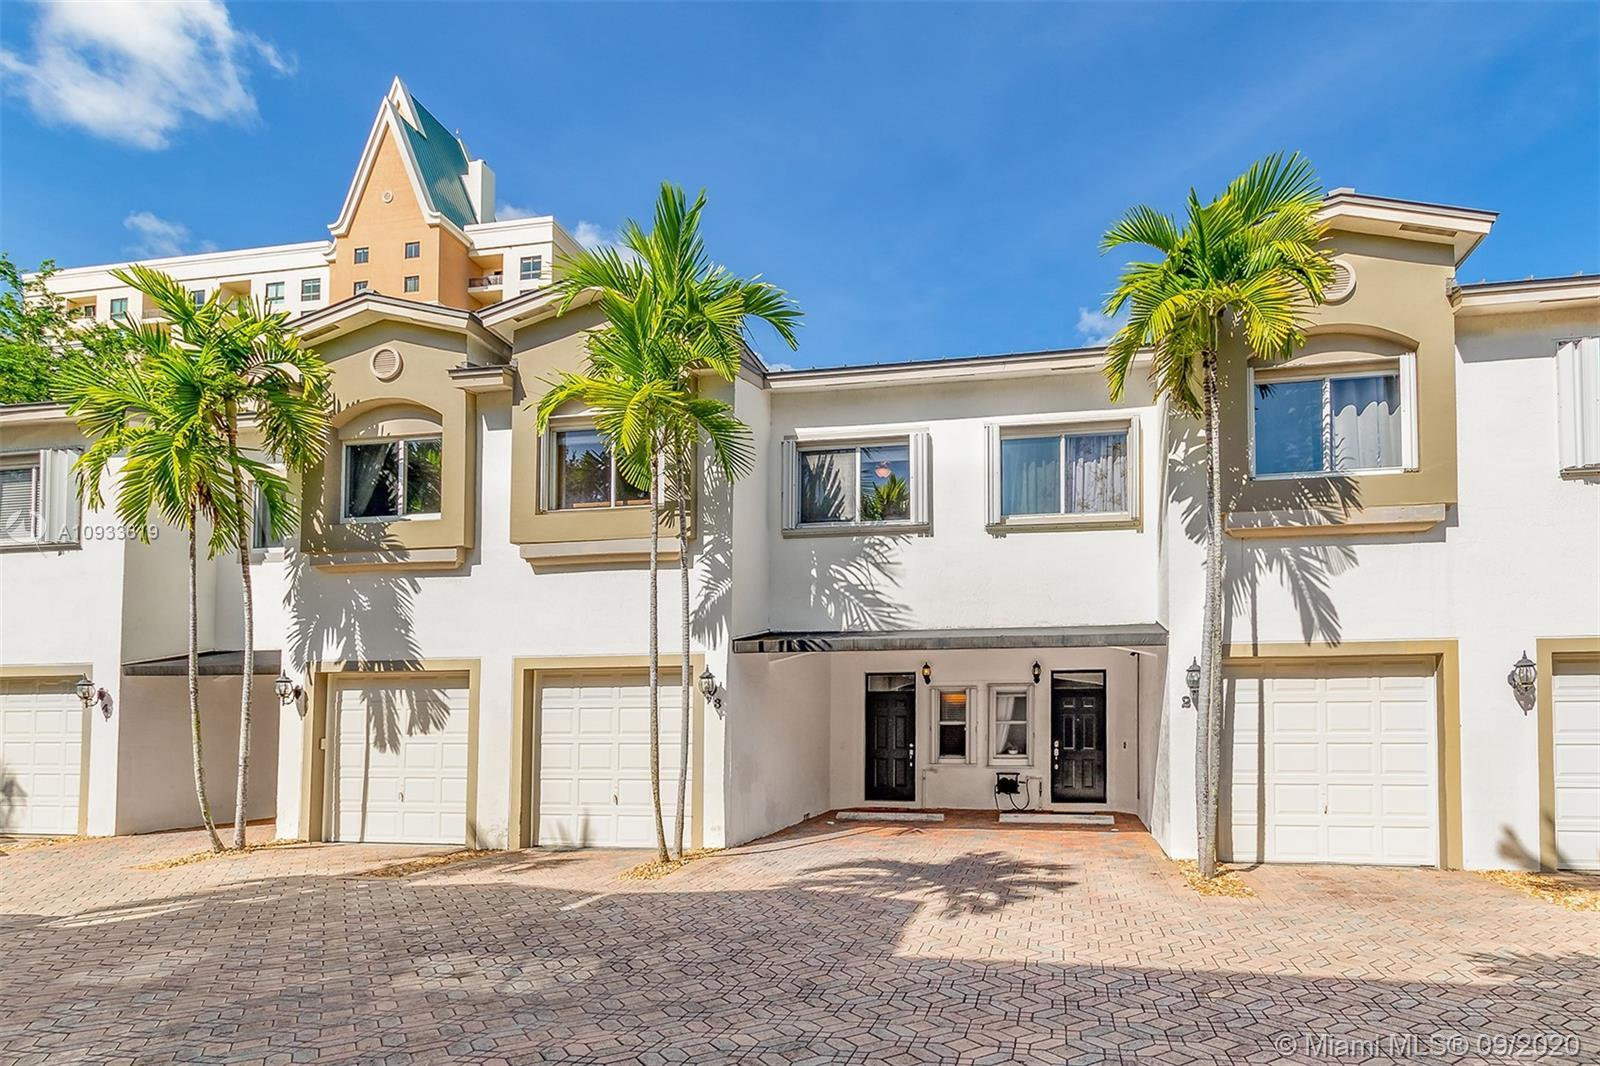 Large 3-bedroom 2.5 bath townhouse in an intimate gated community in Victoria Park! 1 Garage & 1 Car